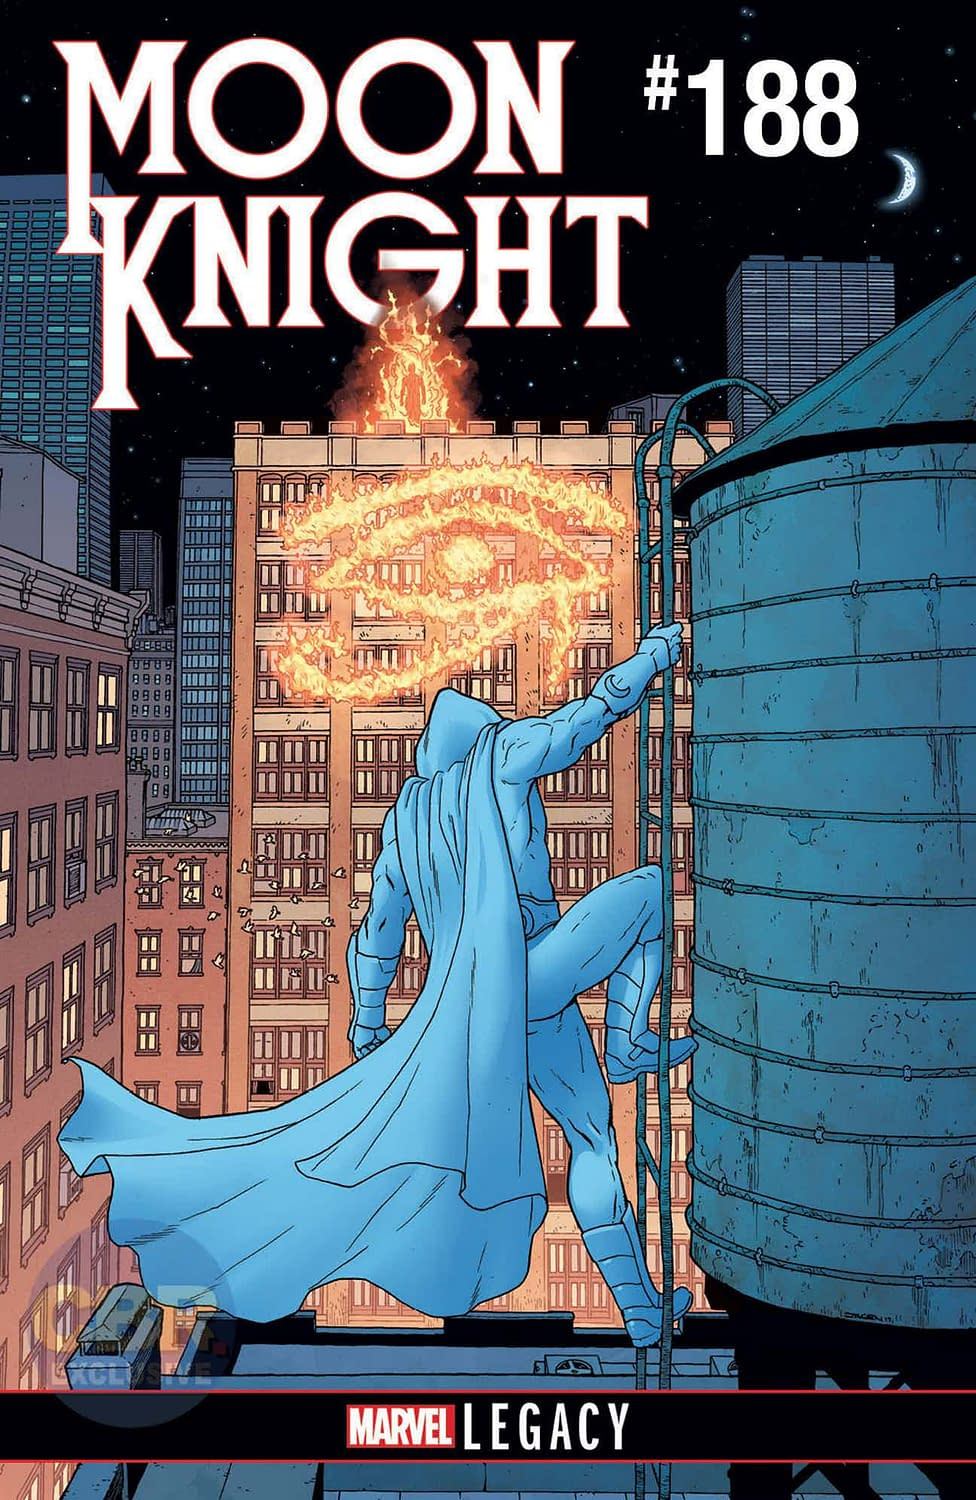 Max Bemis And Jacen Burrows Bring Moon Knight To Marvel Legacy In November